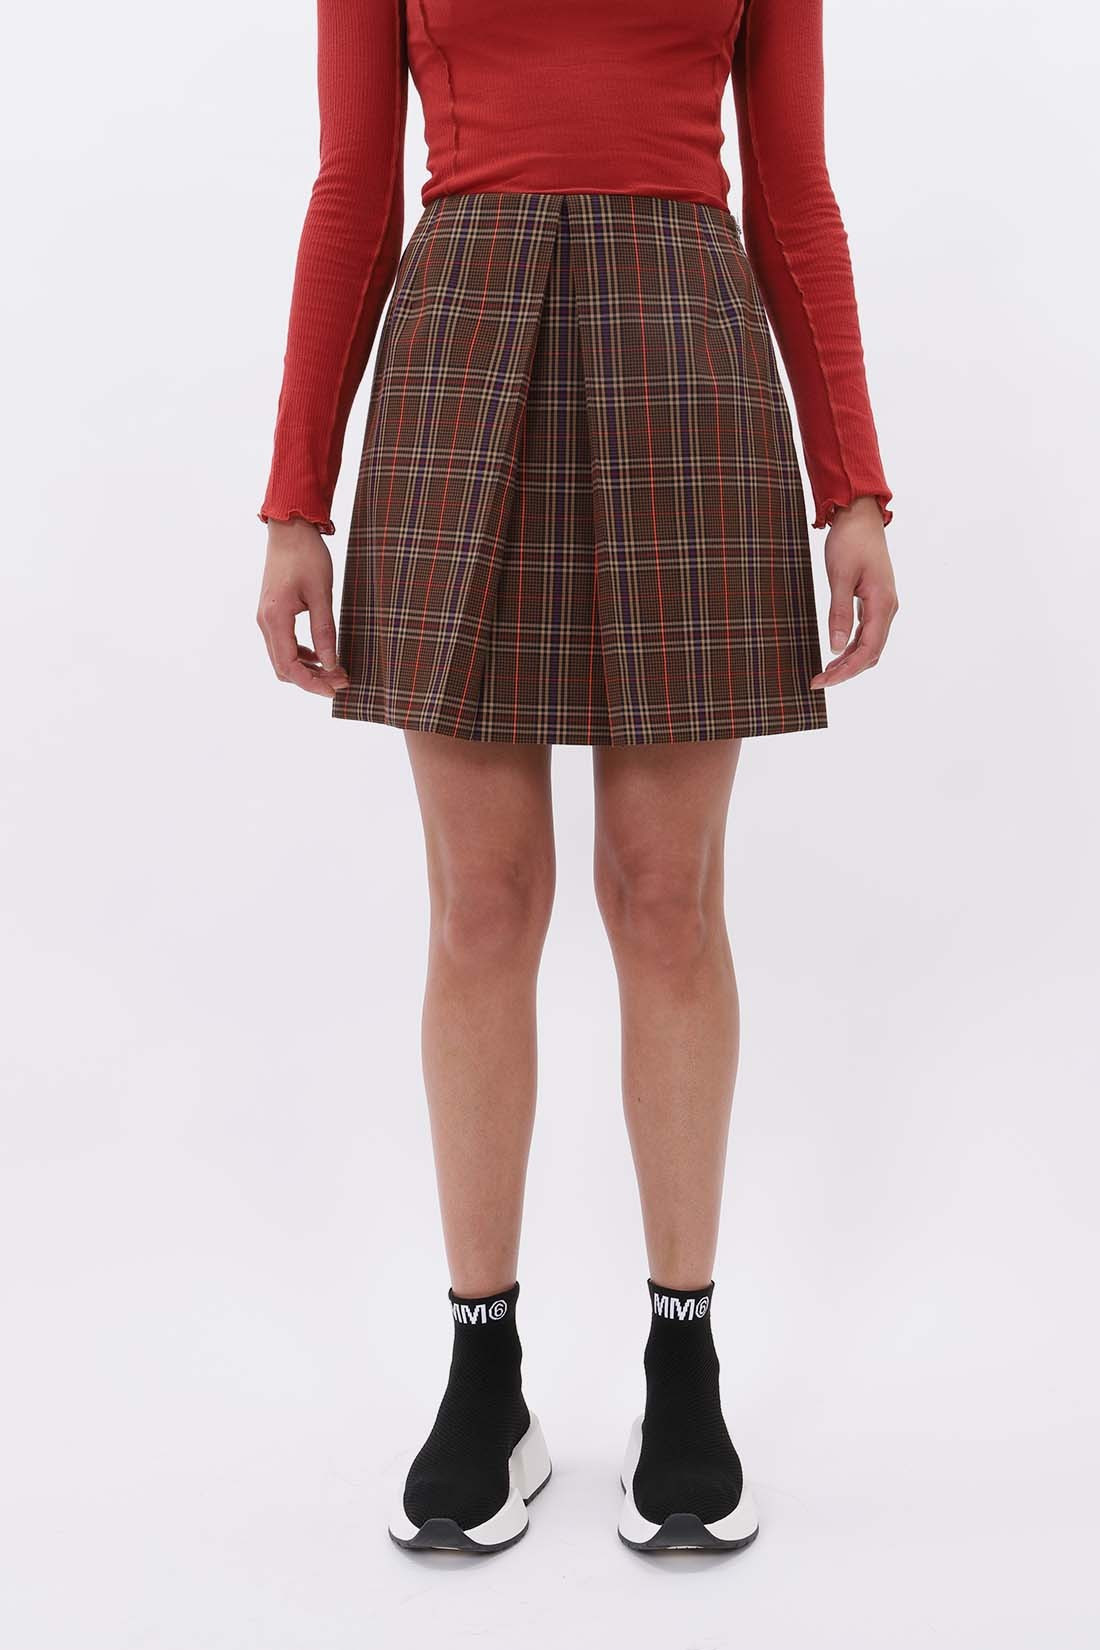 MM6 MAISON MARGIELA / Tartan skirt Brown